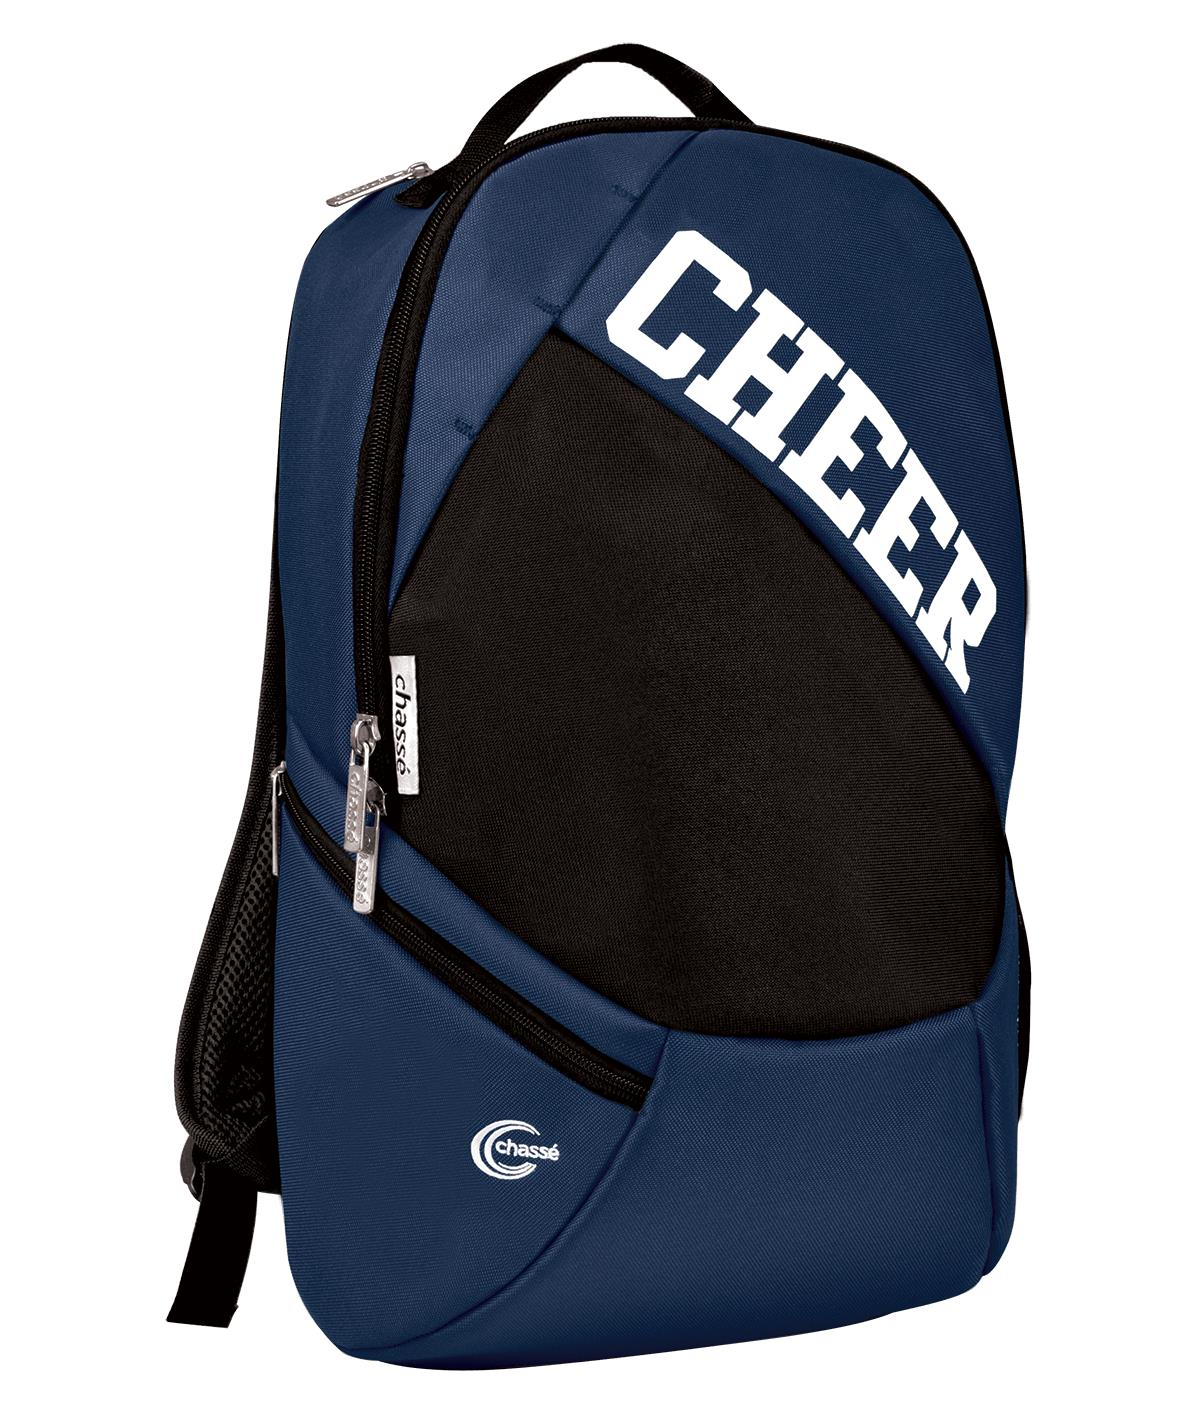 Chasse Explorer Backpack